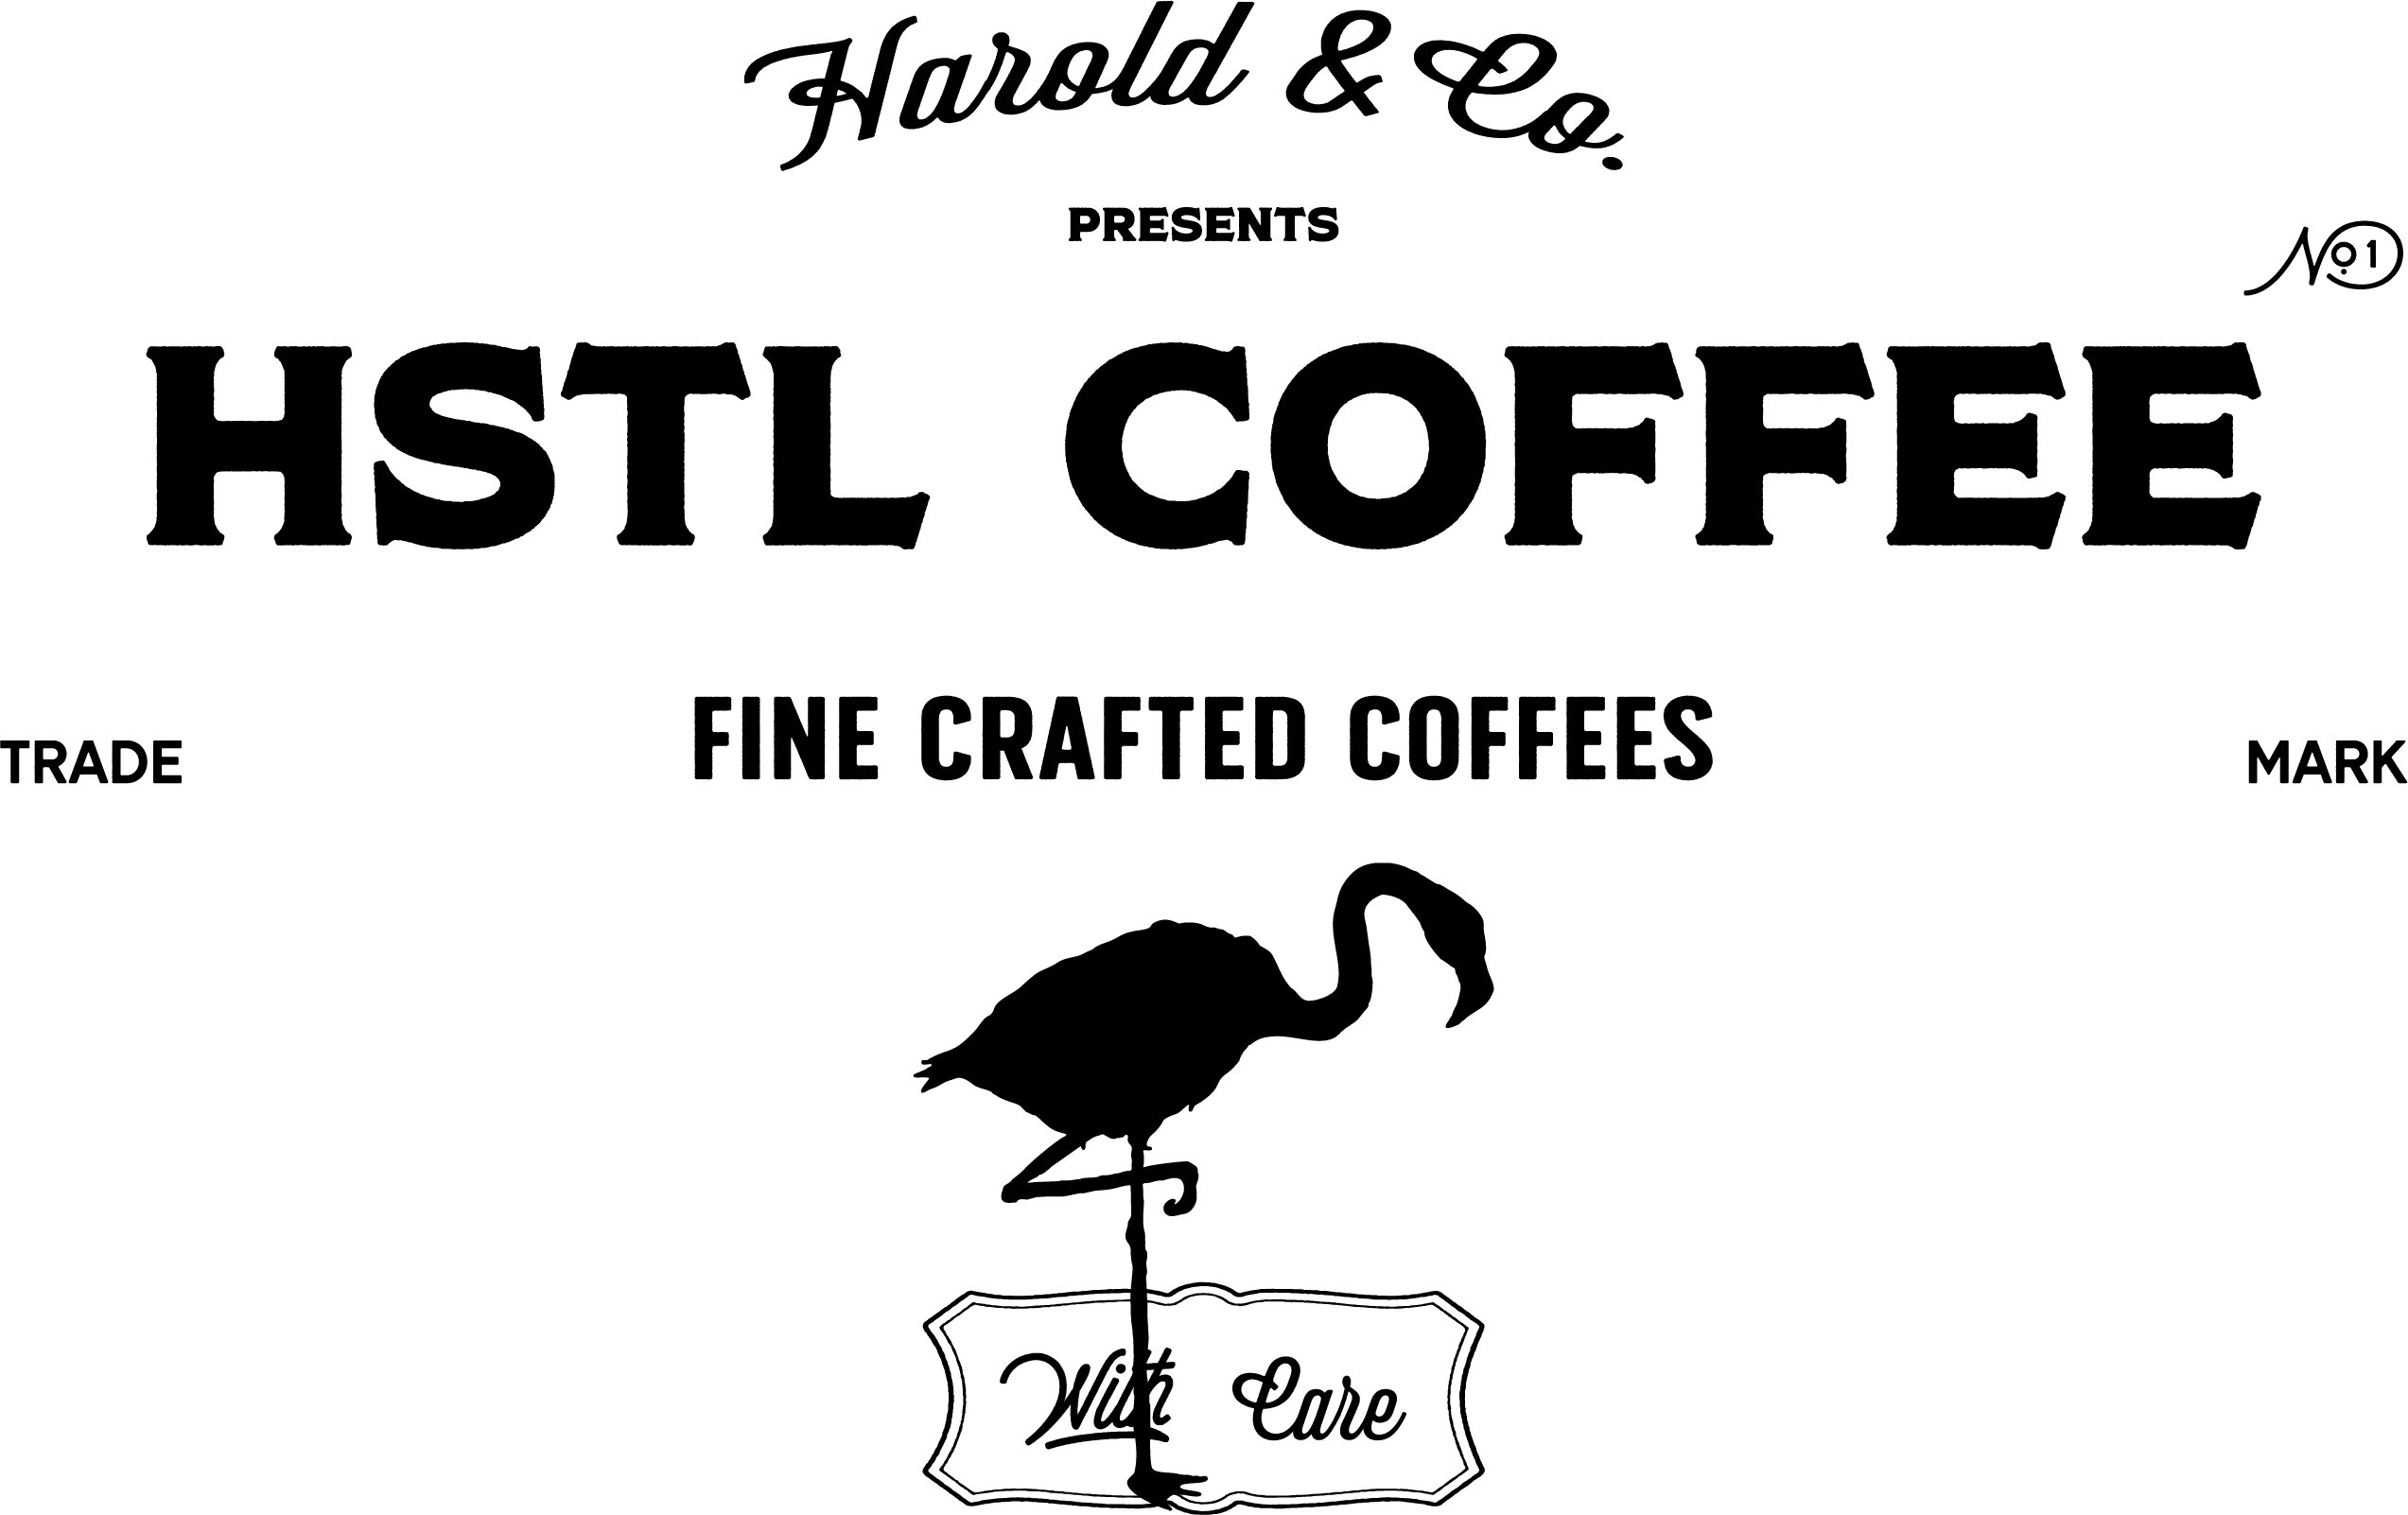 HSTL. Coffee Company